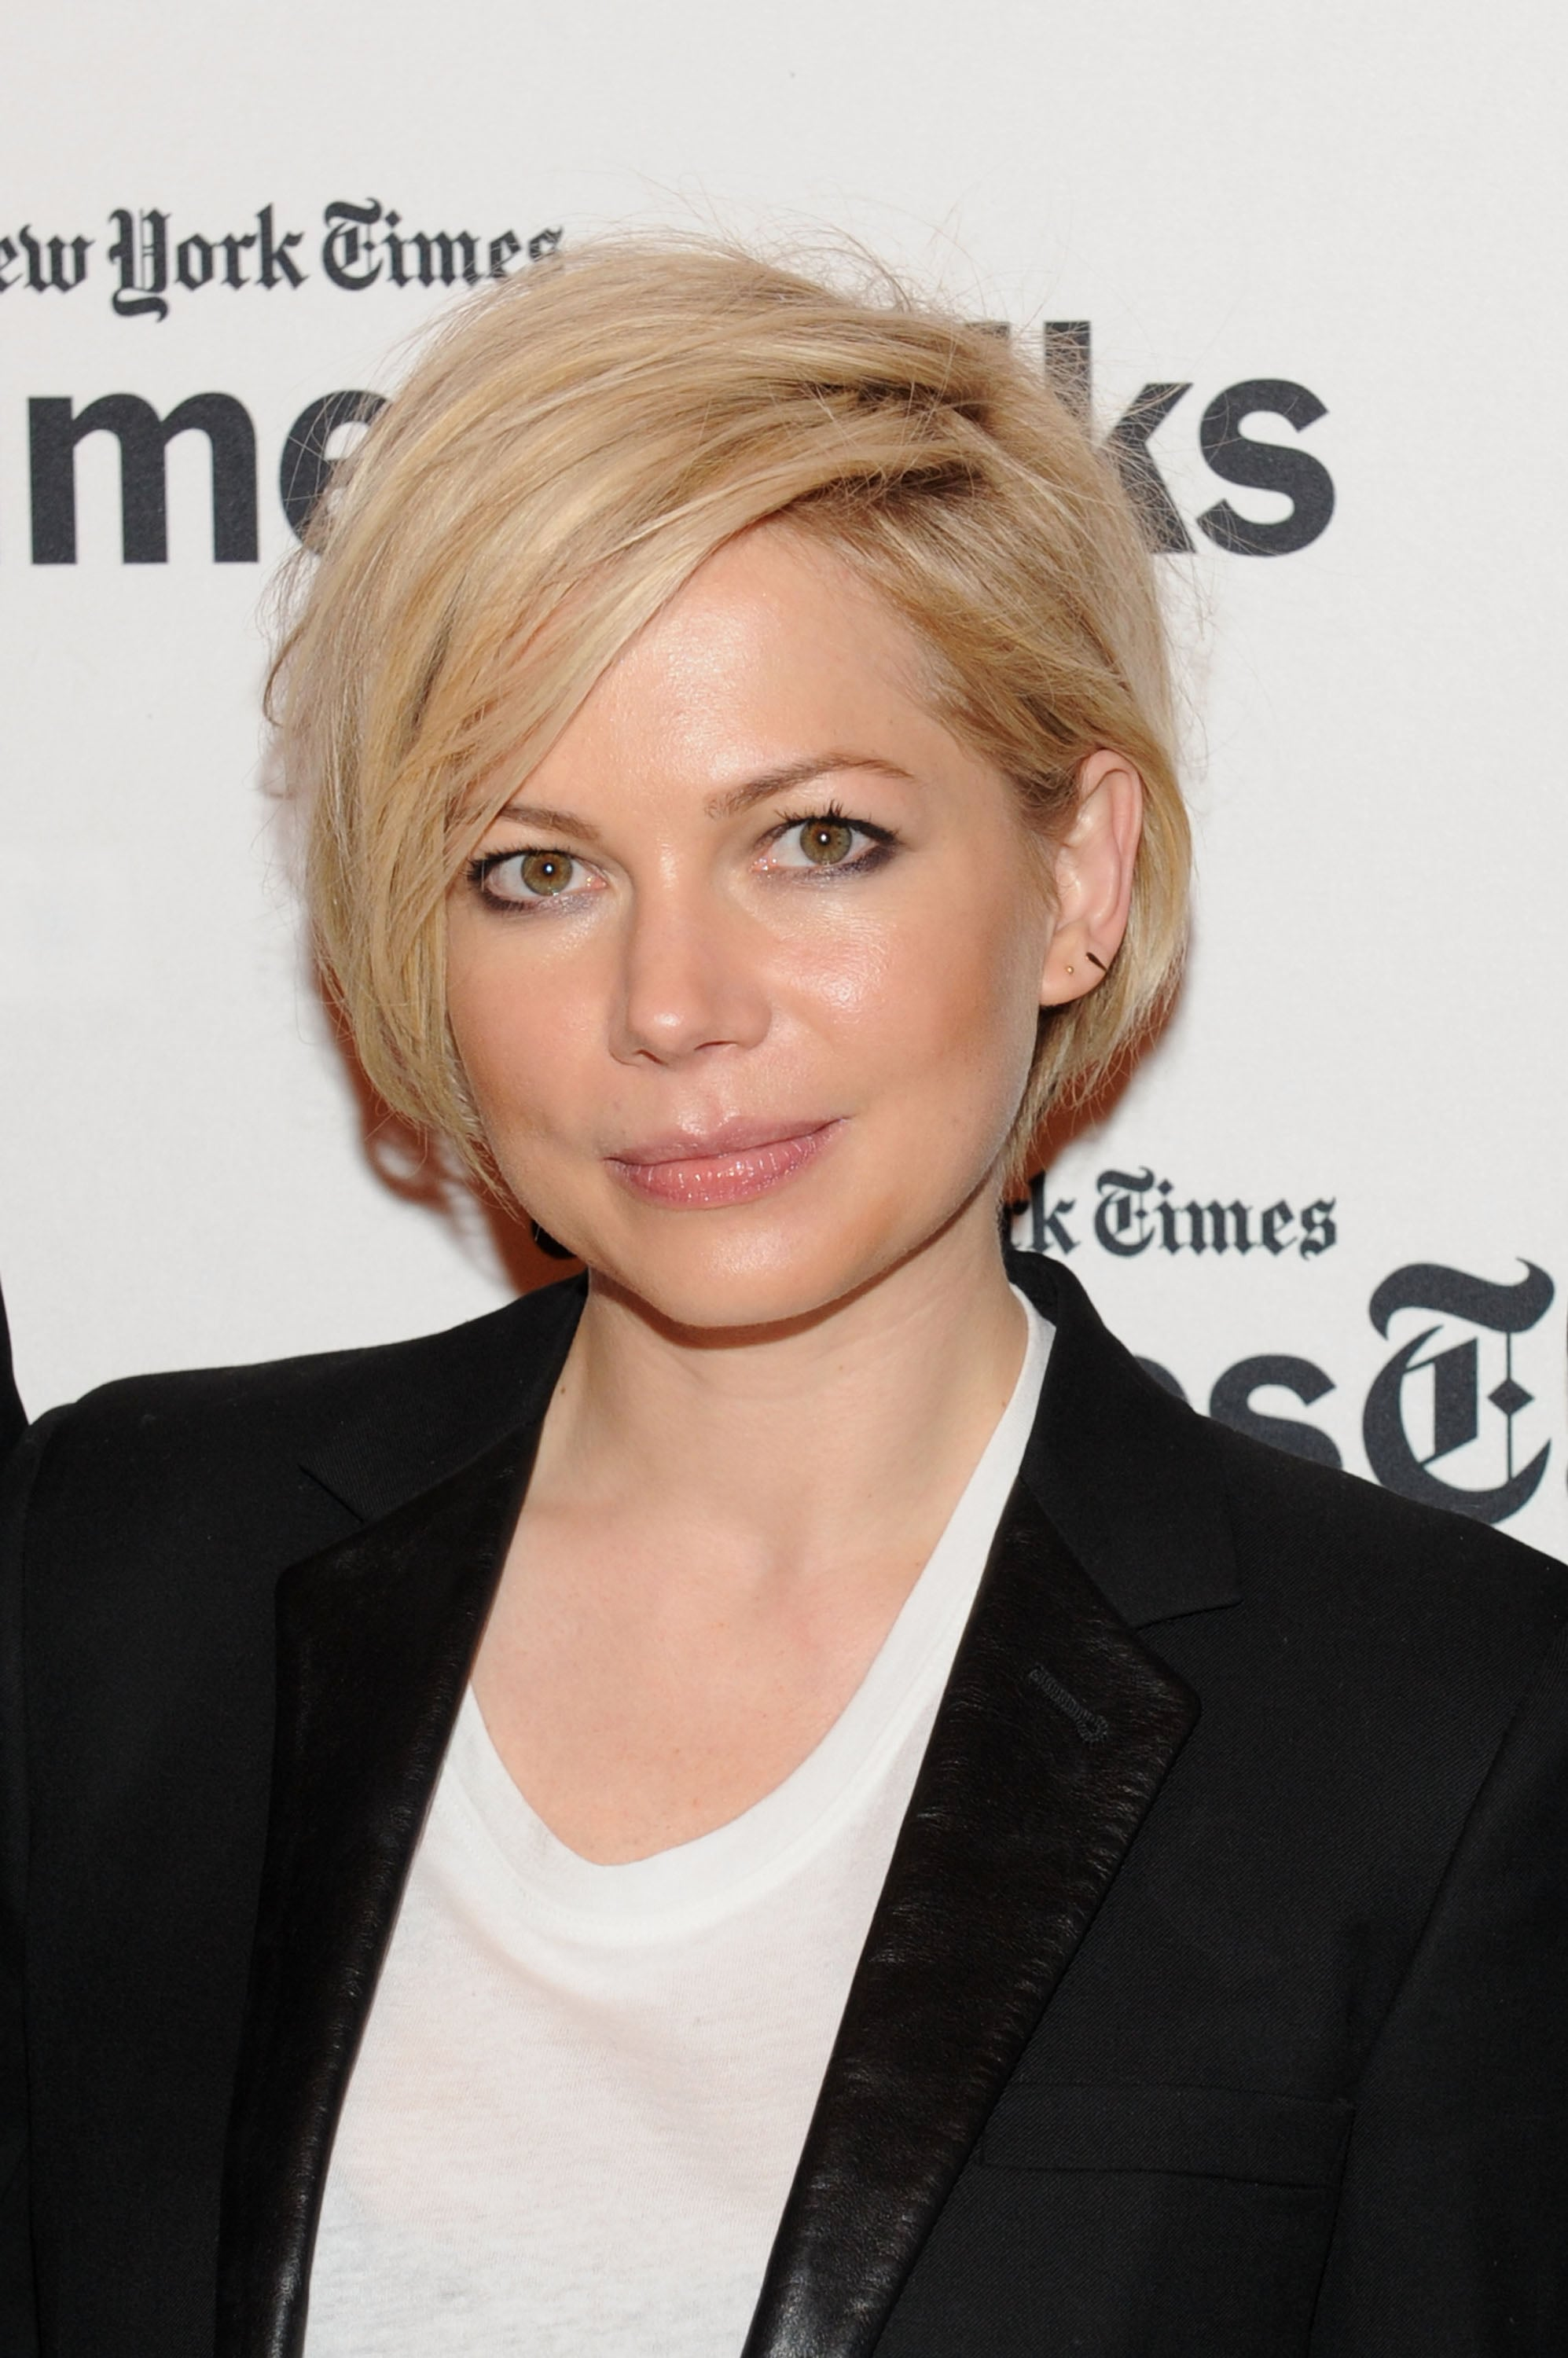 Michelle Williams Grown Out Hair February 2014 Popsugar